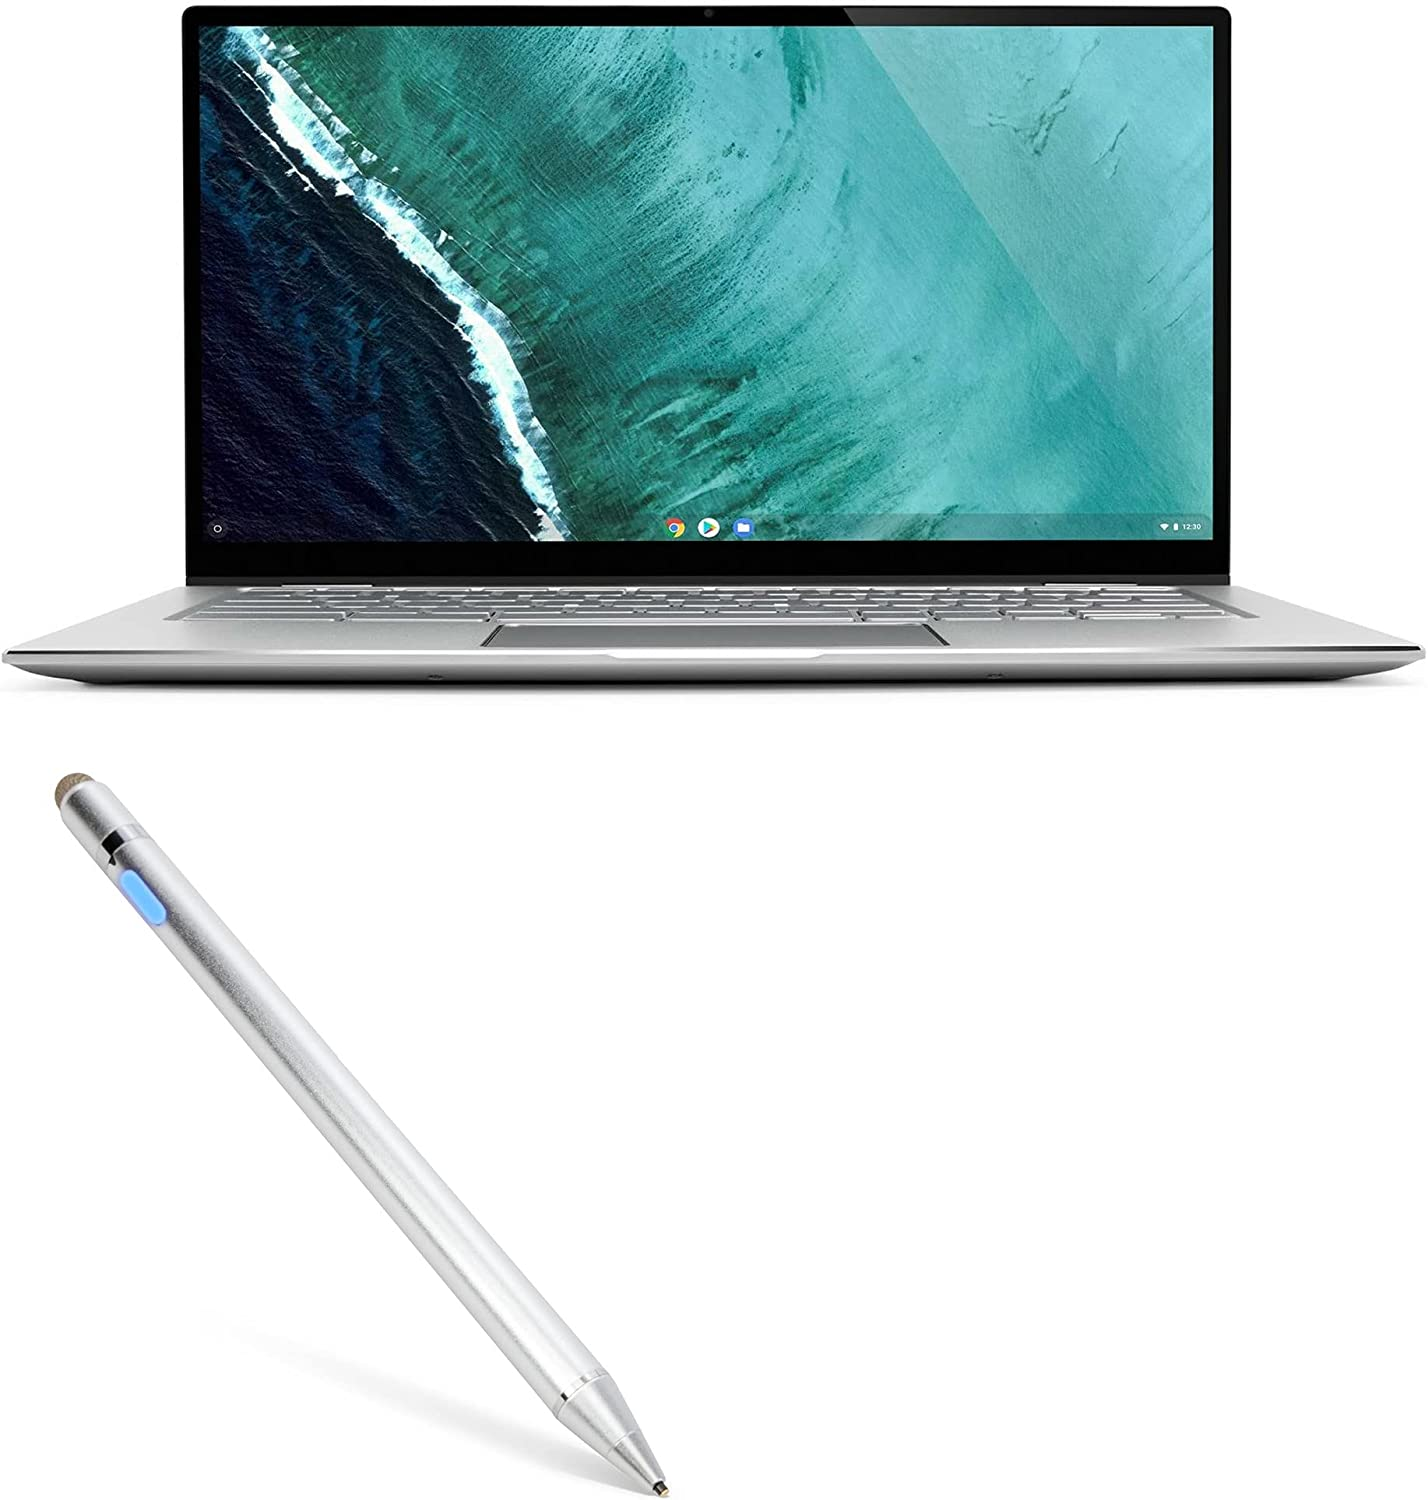 Stylus Pen for 100% quality warranty! Max 58% OFF ASUS Chromebook by Flip BoxWave C434